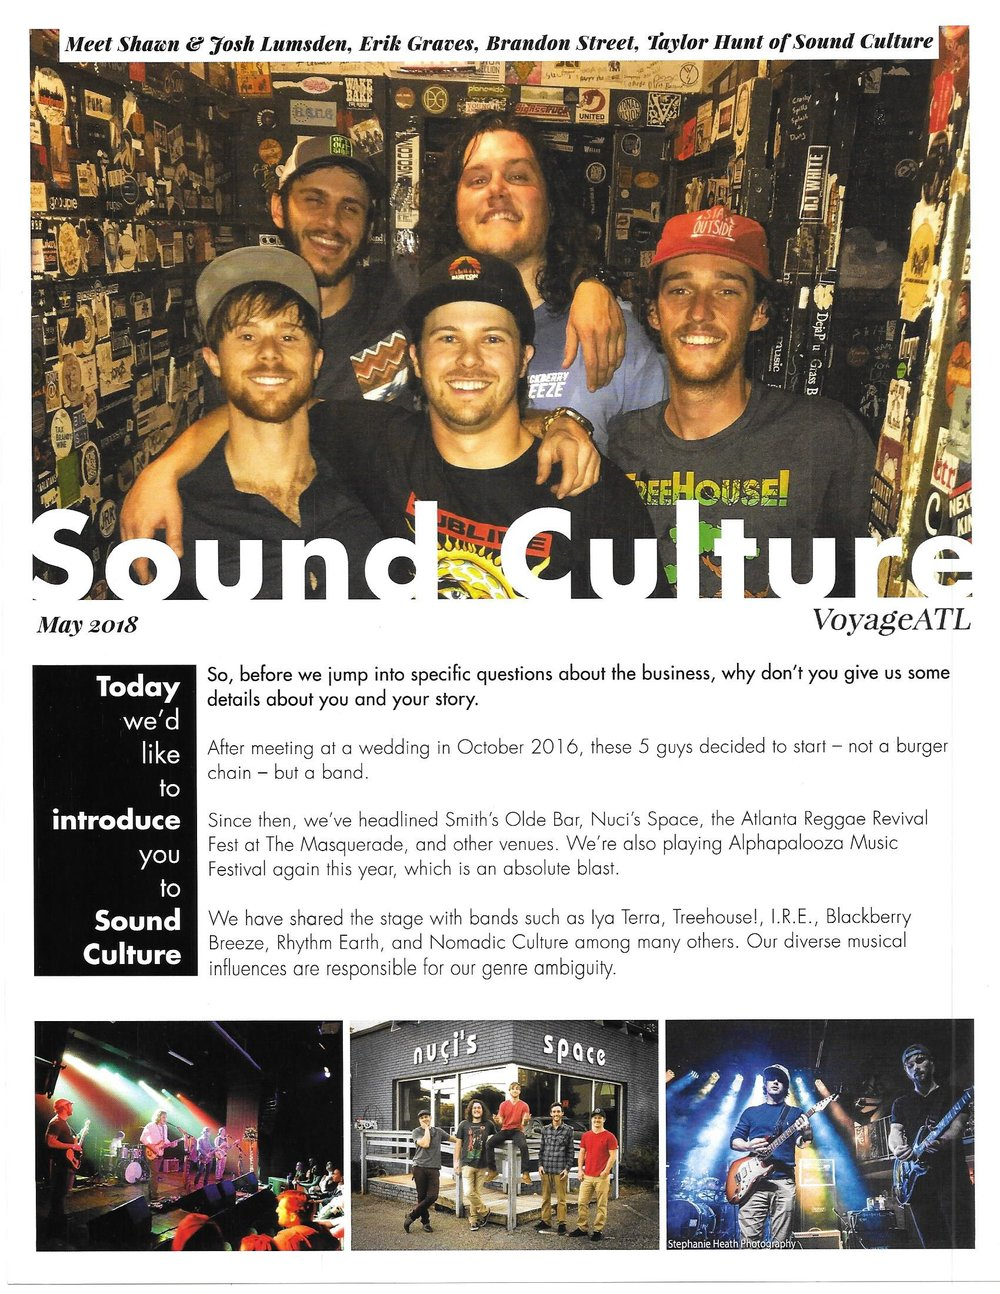 Voyage Interview with Sound Culture